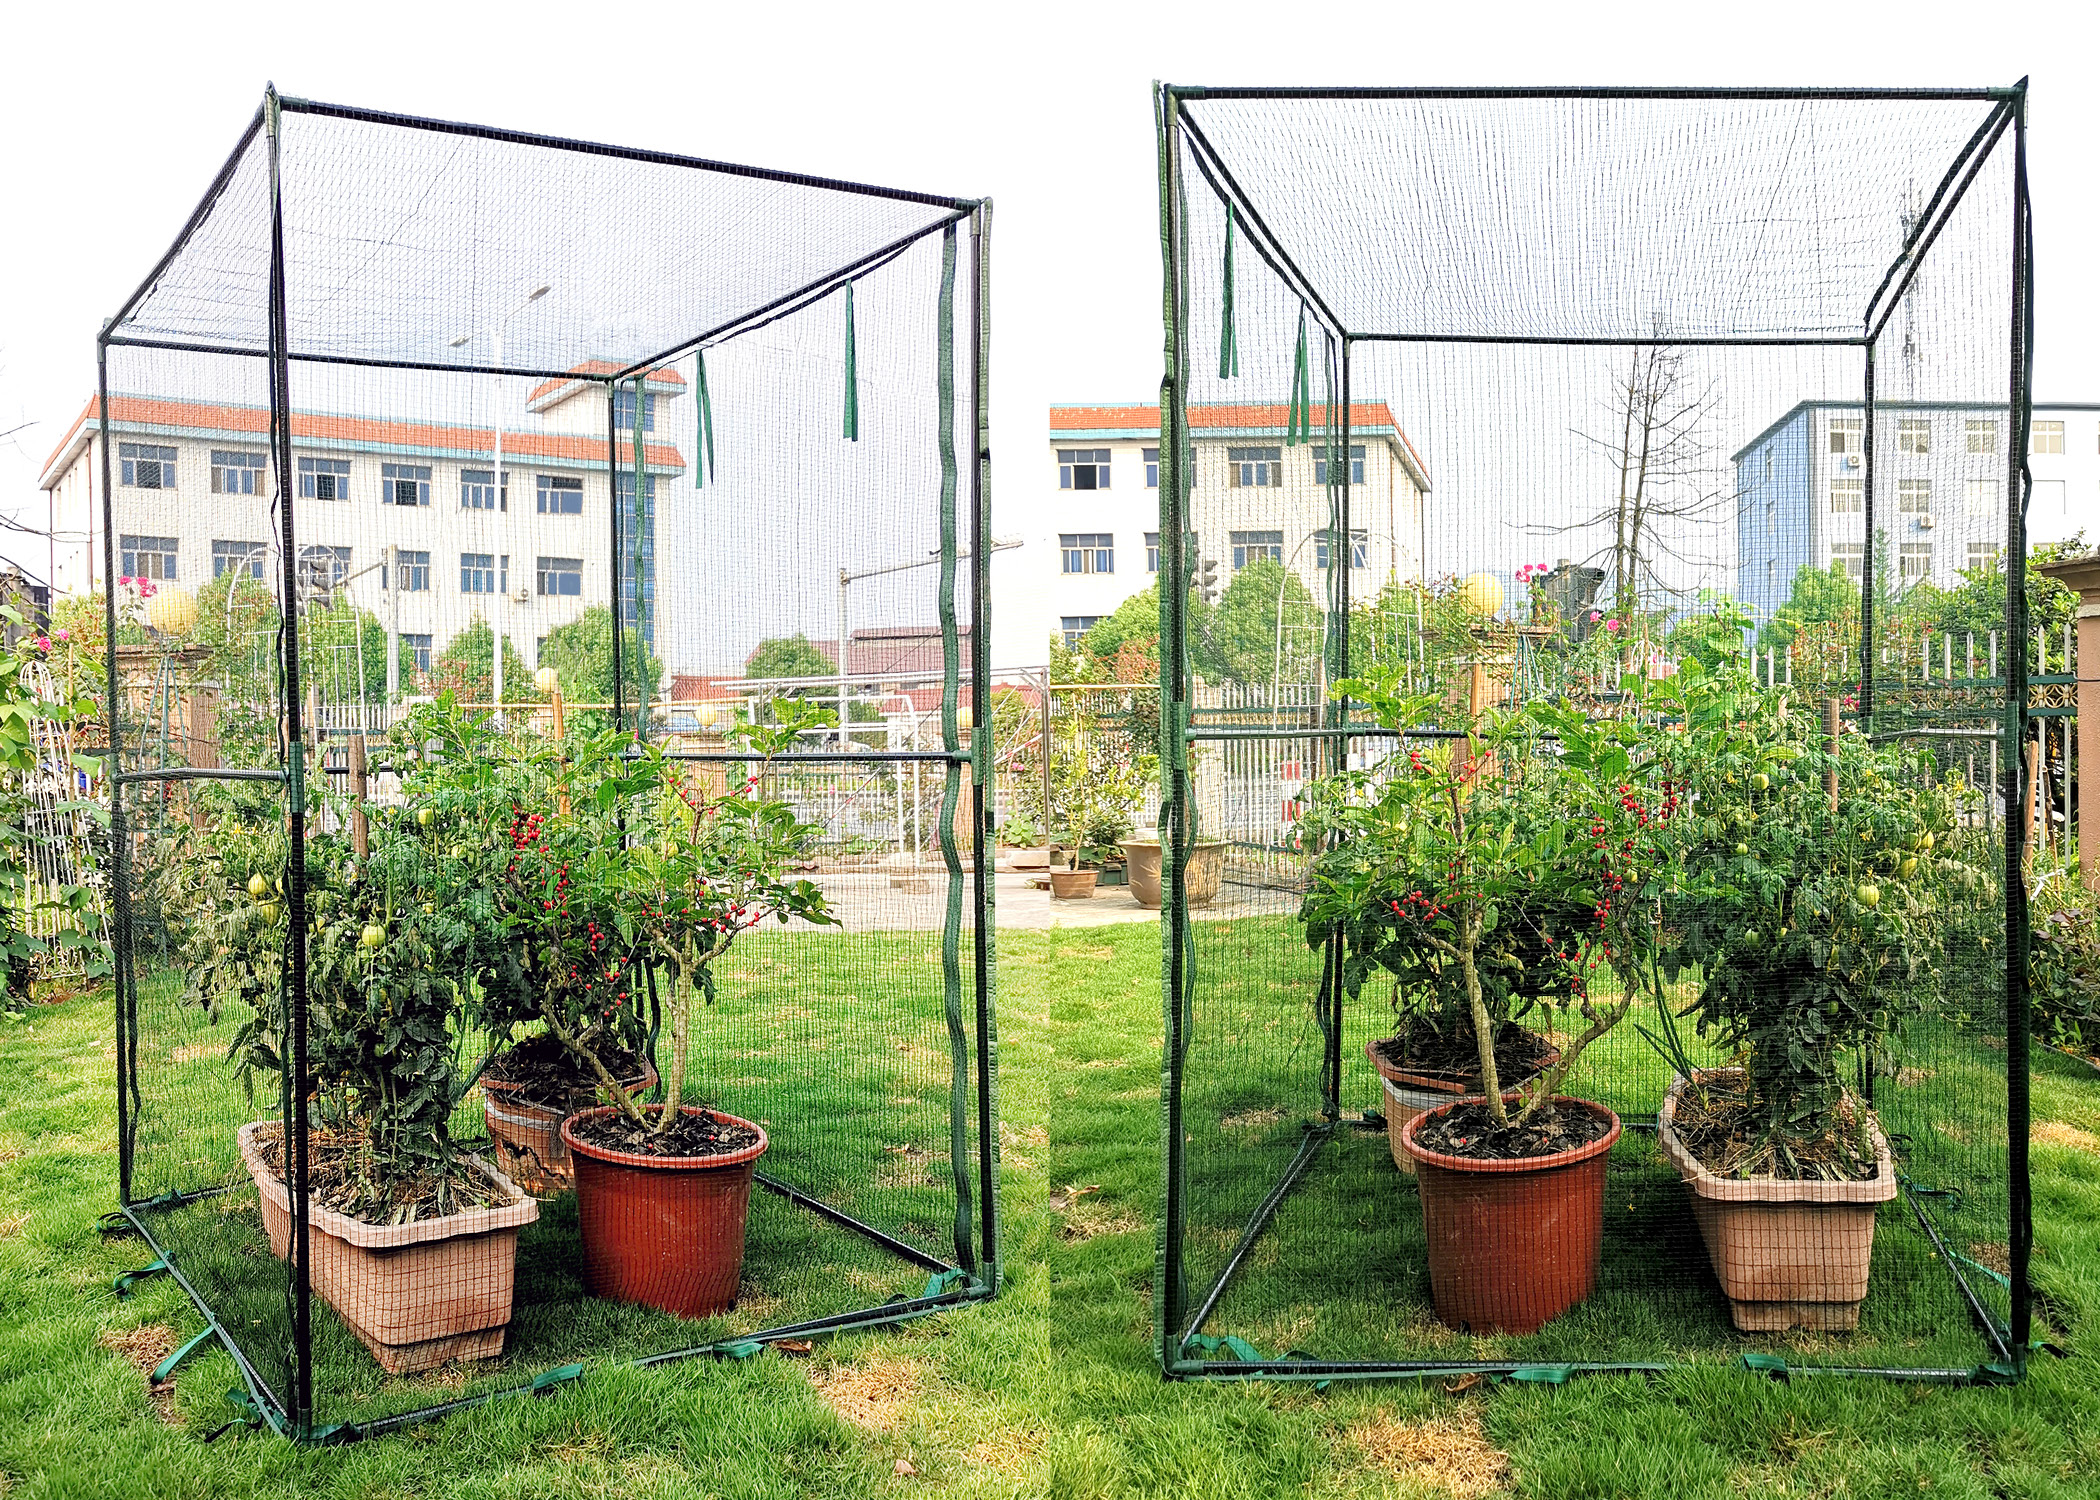 Fruit Cage SH3288 Steel Frame, Anti-Bird Netting, 47.2 x 47.2 x 70.9-inches